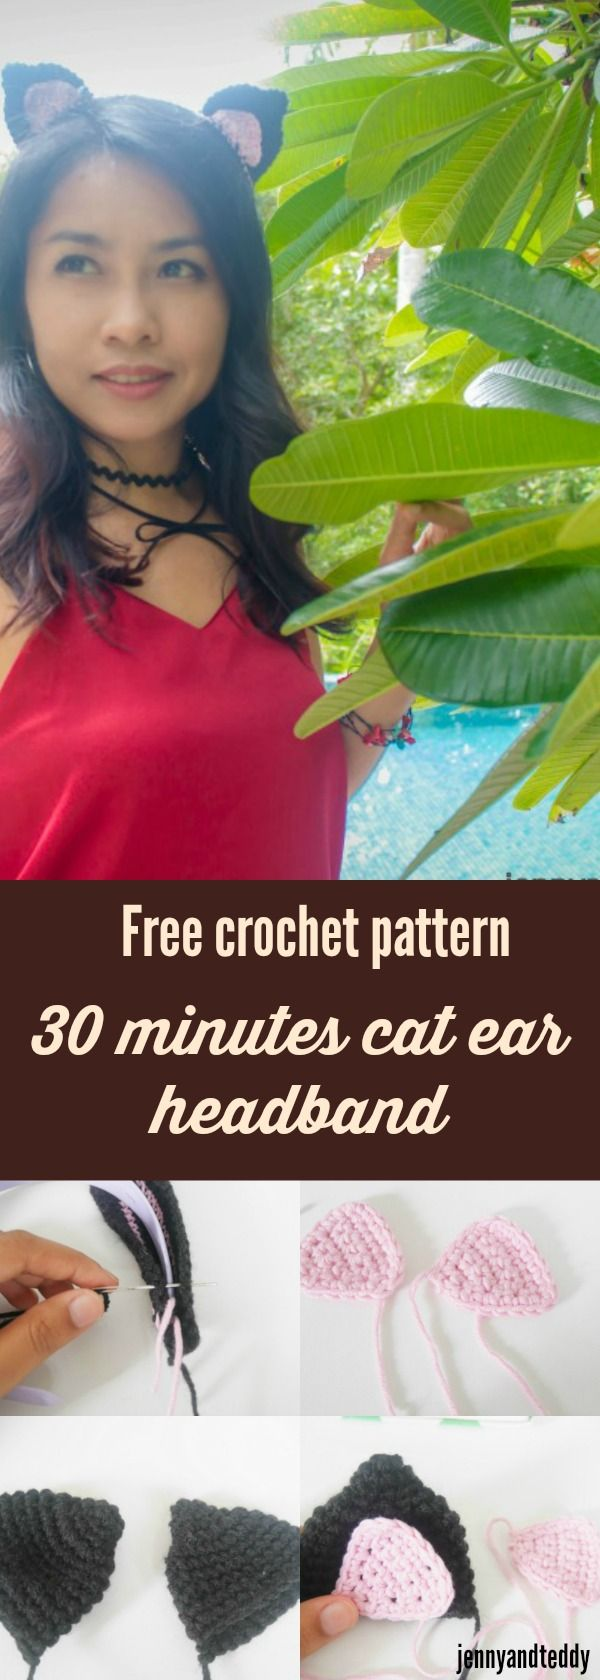 free crochet pattern 30 minutes cat ear headband easy and quick perfect for last minutes Halloween costume or a party and have fun dress up with easy to follow tutorial on jennyandteddy.